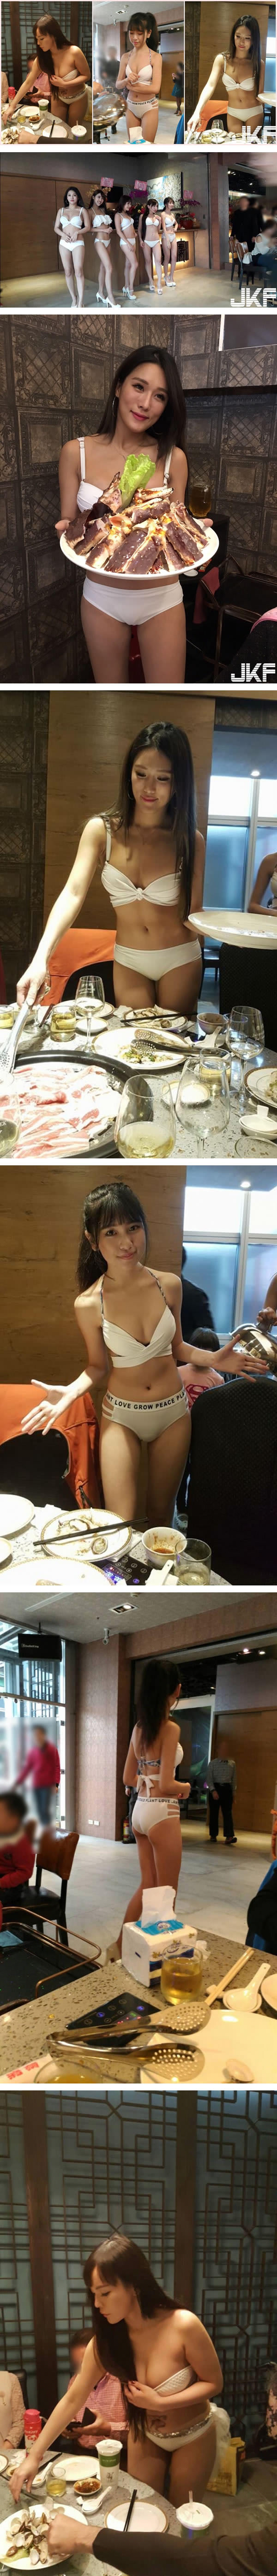 This Hot Pot Restaurant In Taiwan Has Girl Hosts Who Serve In Bikinis